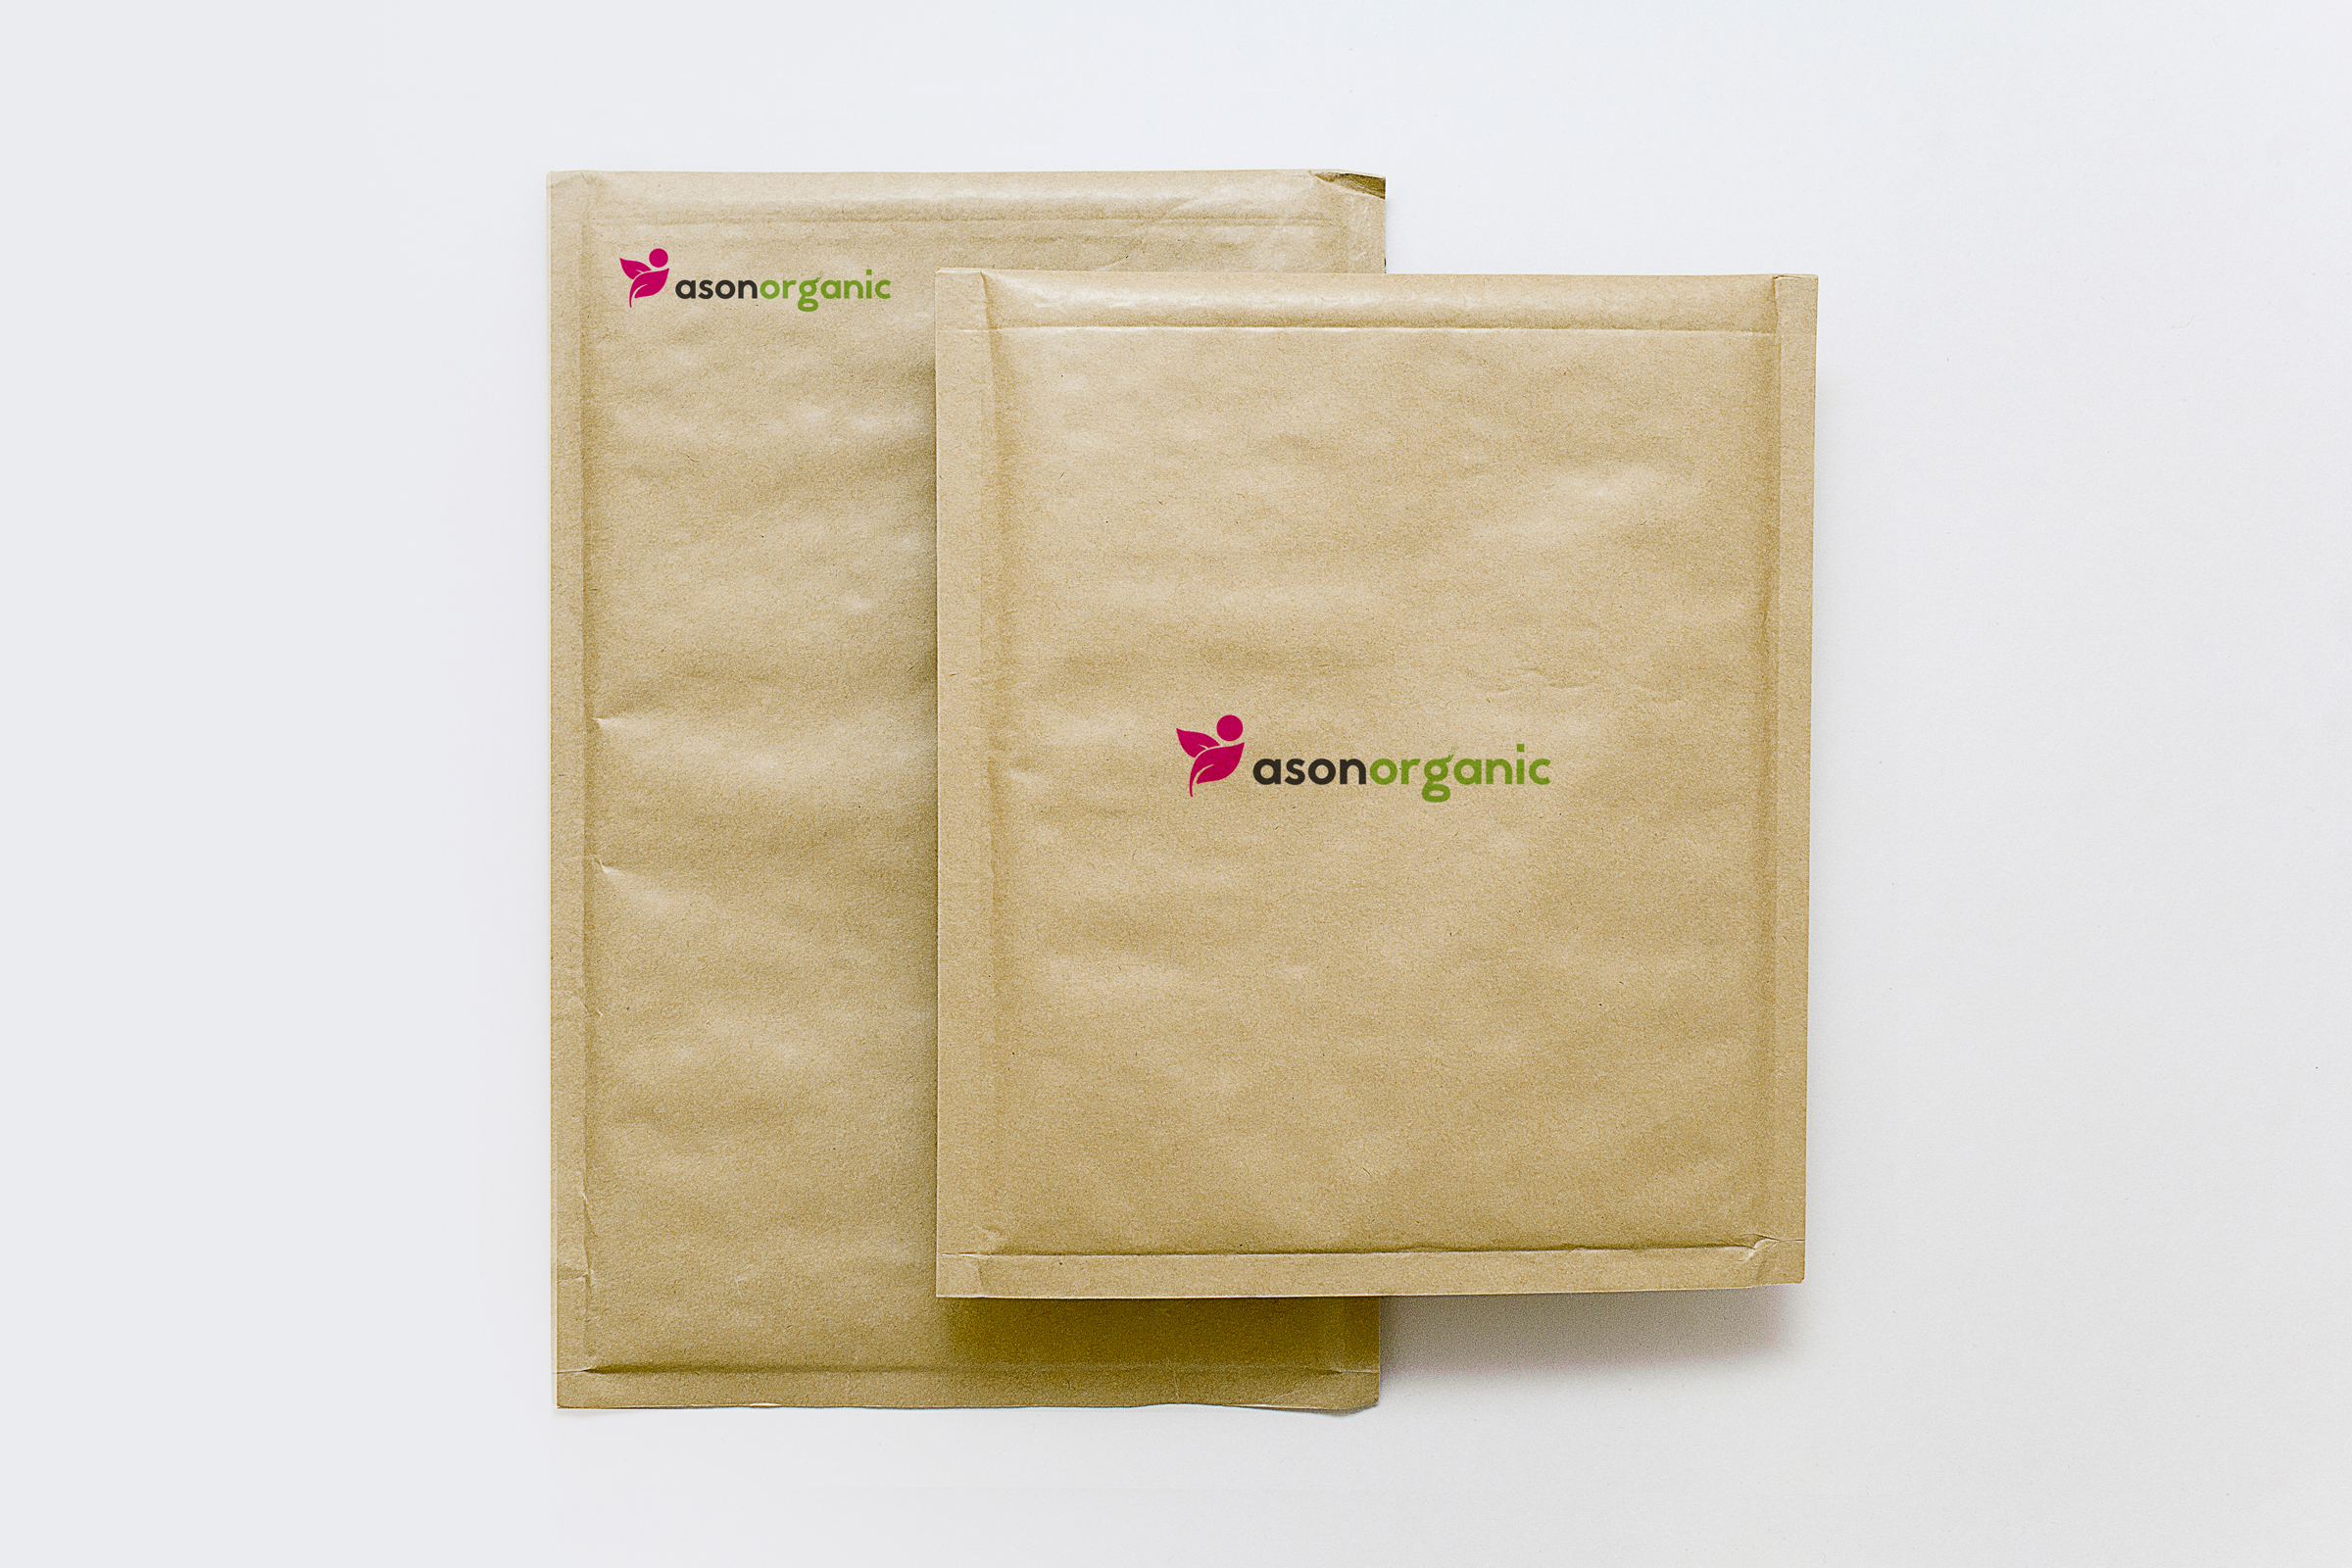 Asonorganic corporate design